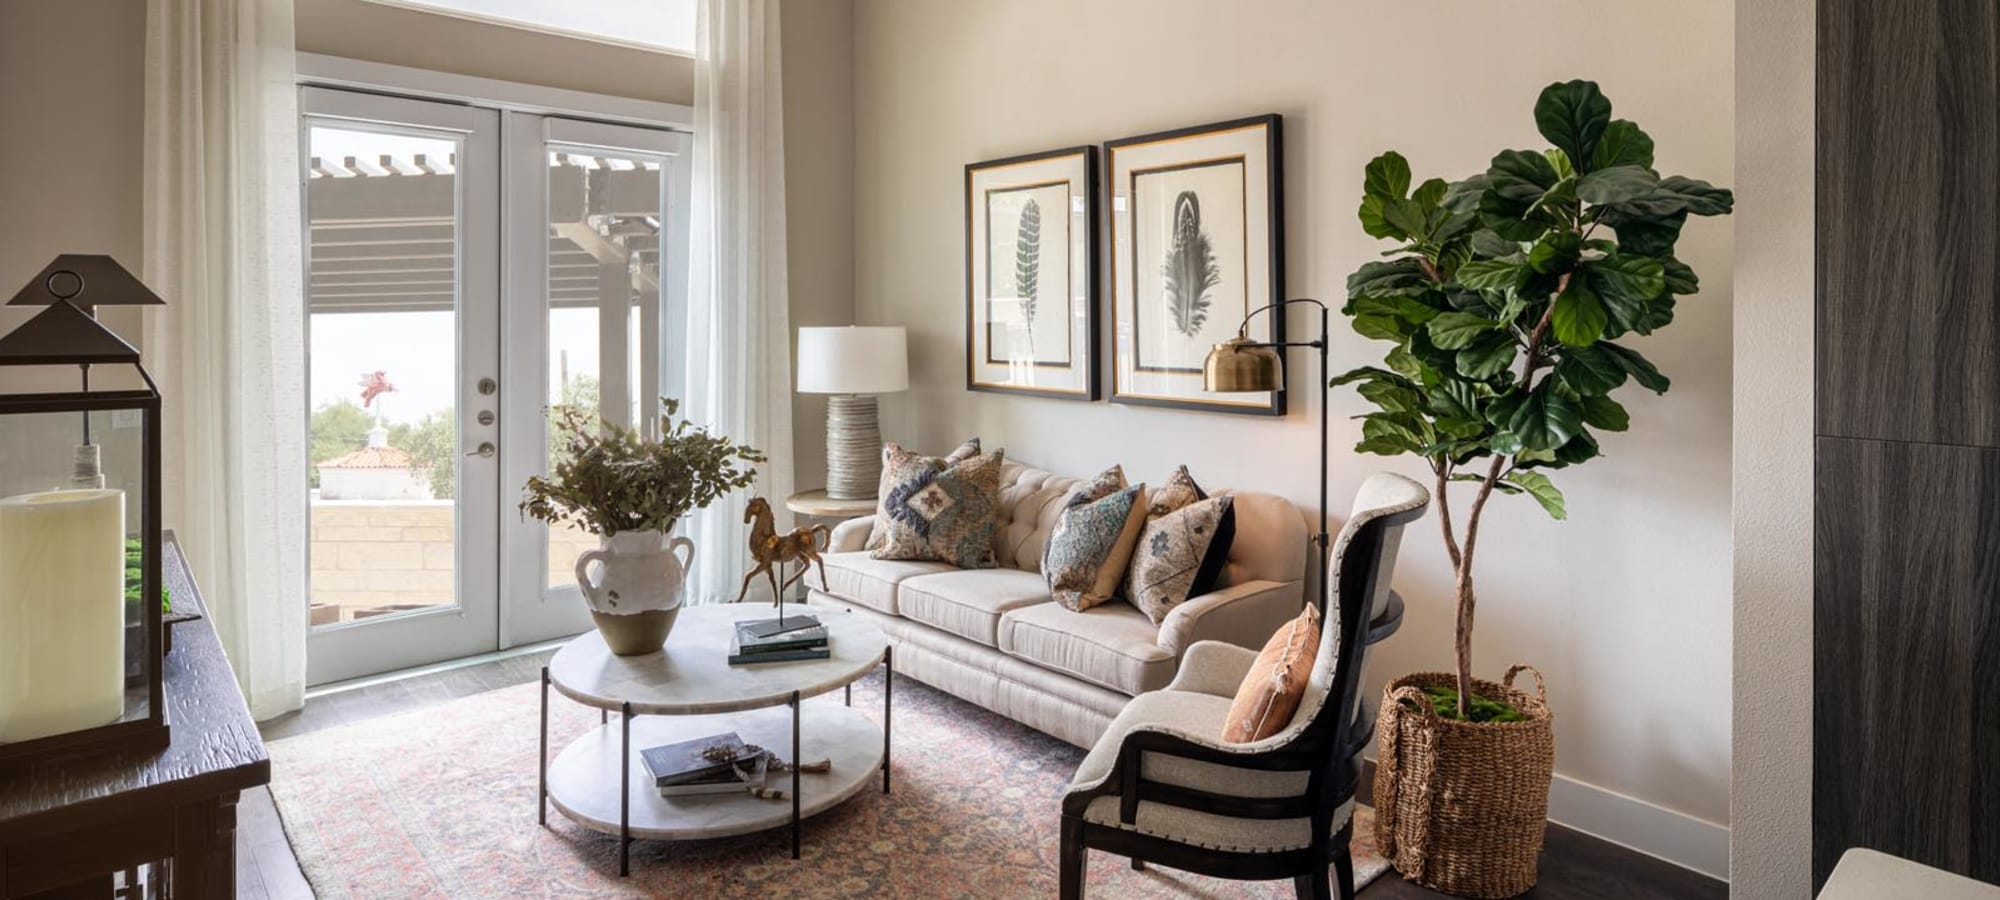 Classically furnished model home's living area at Magnolia Heights in San Antonio, Texas